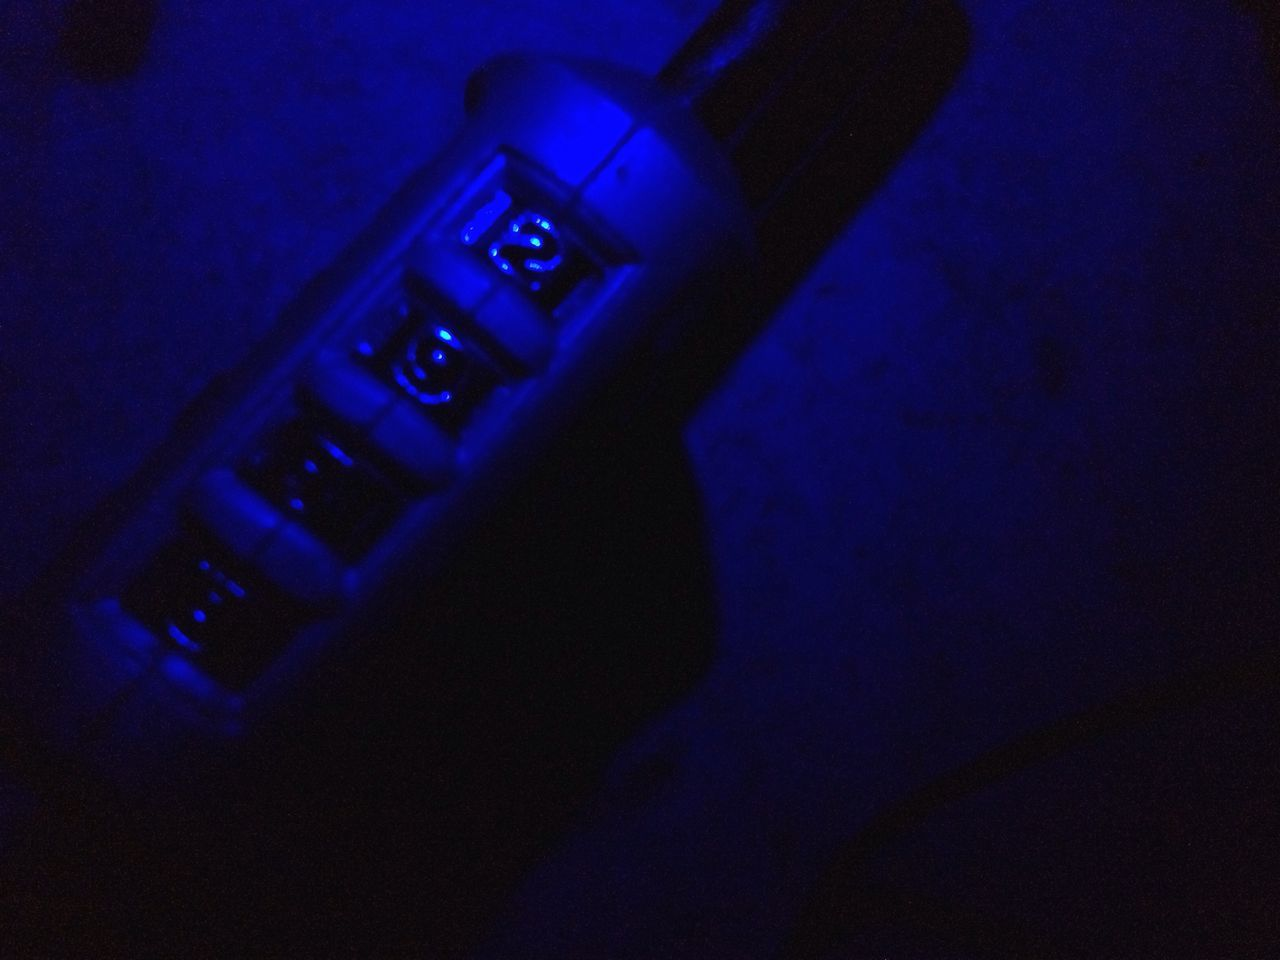 Blue Bluelight Lock Padlock Two Dirty Bluish Silver  Reflection Number Shadow Taking Photos Digits